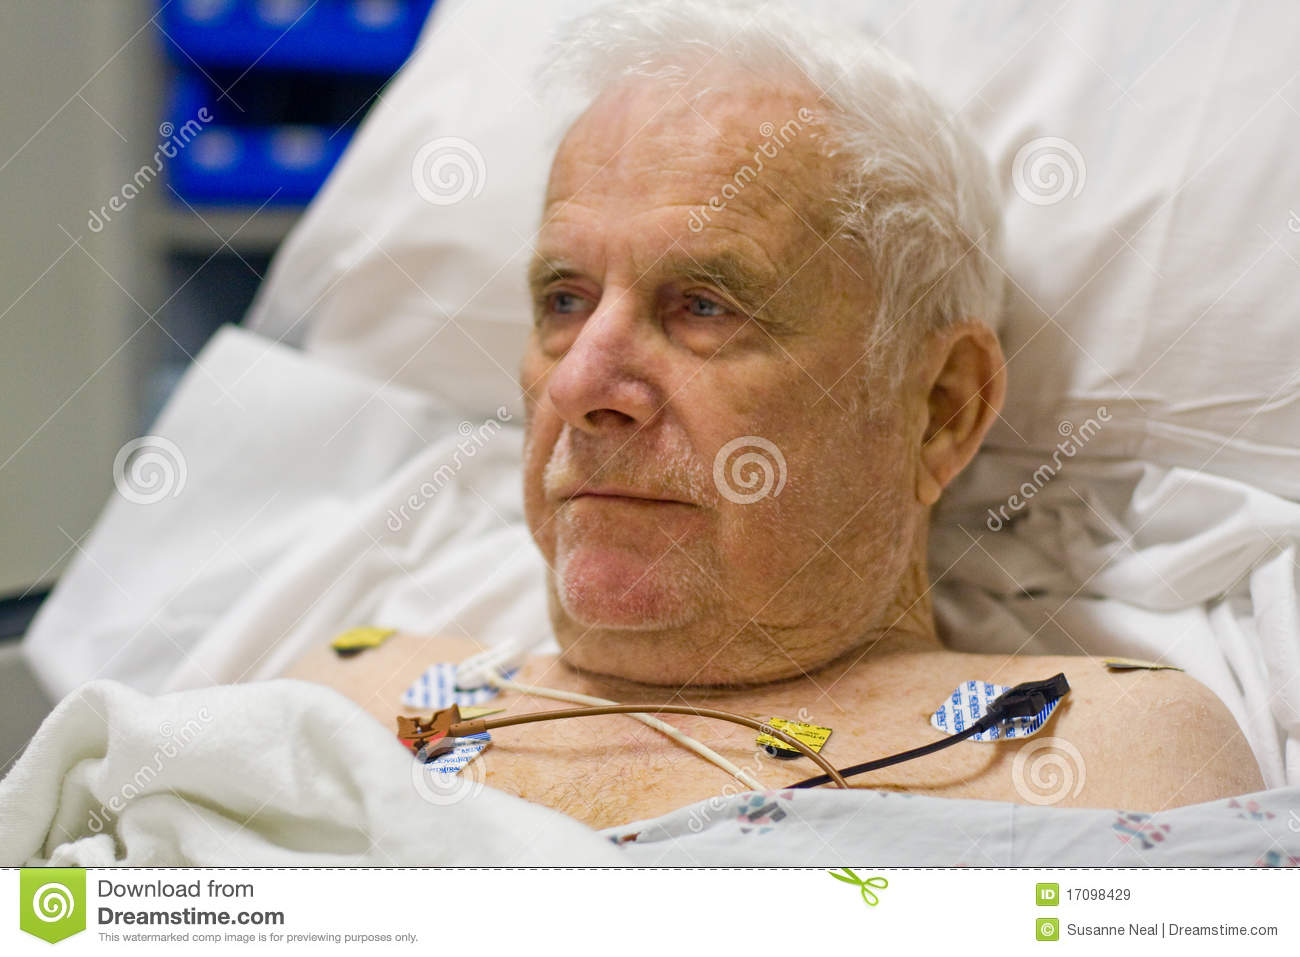 Patient hooked up to EKG monitor